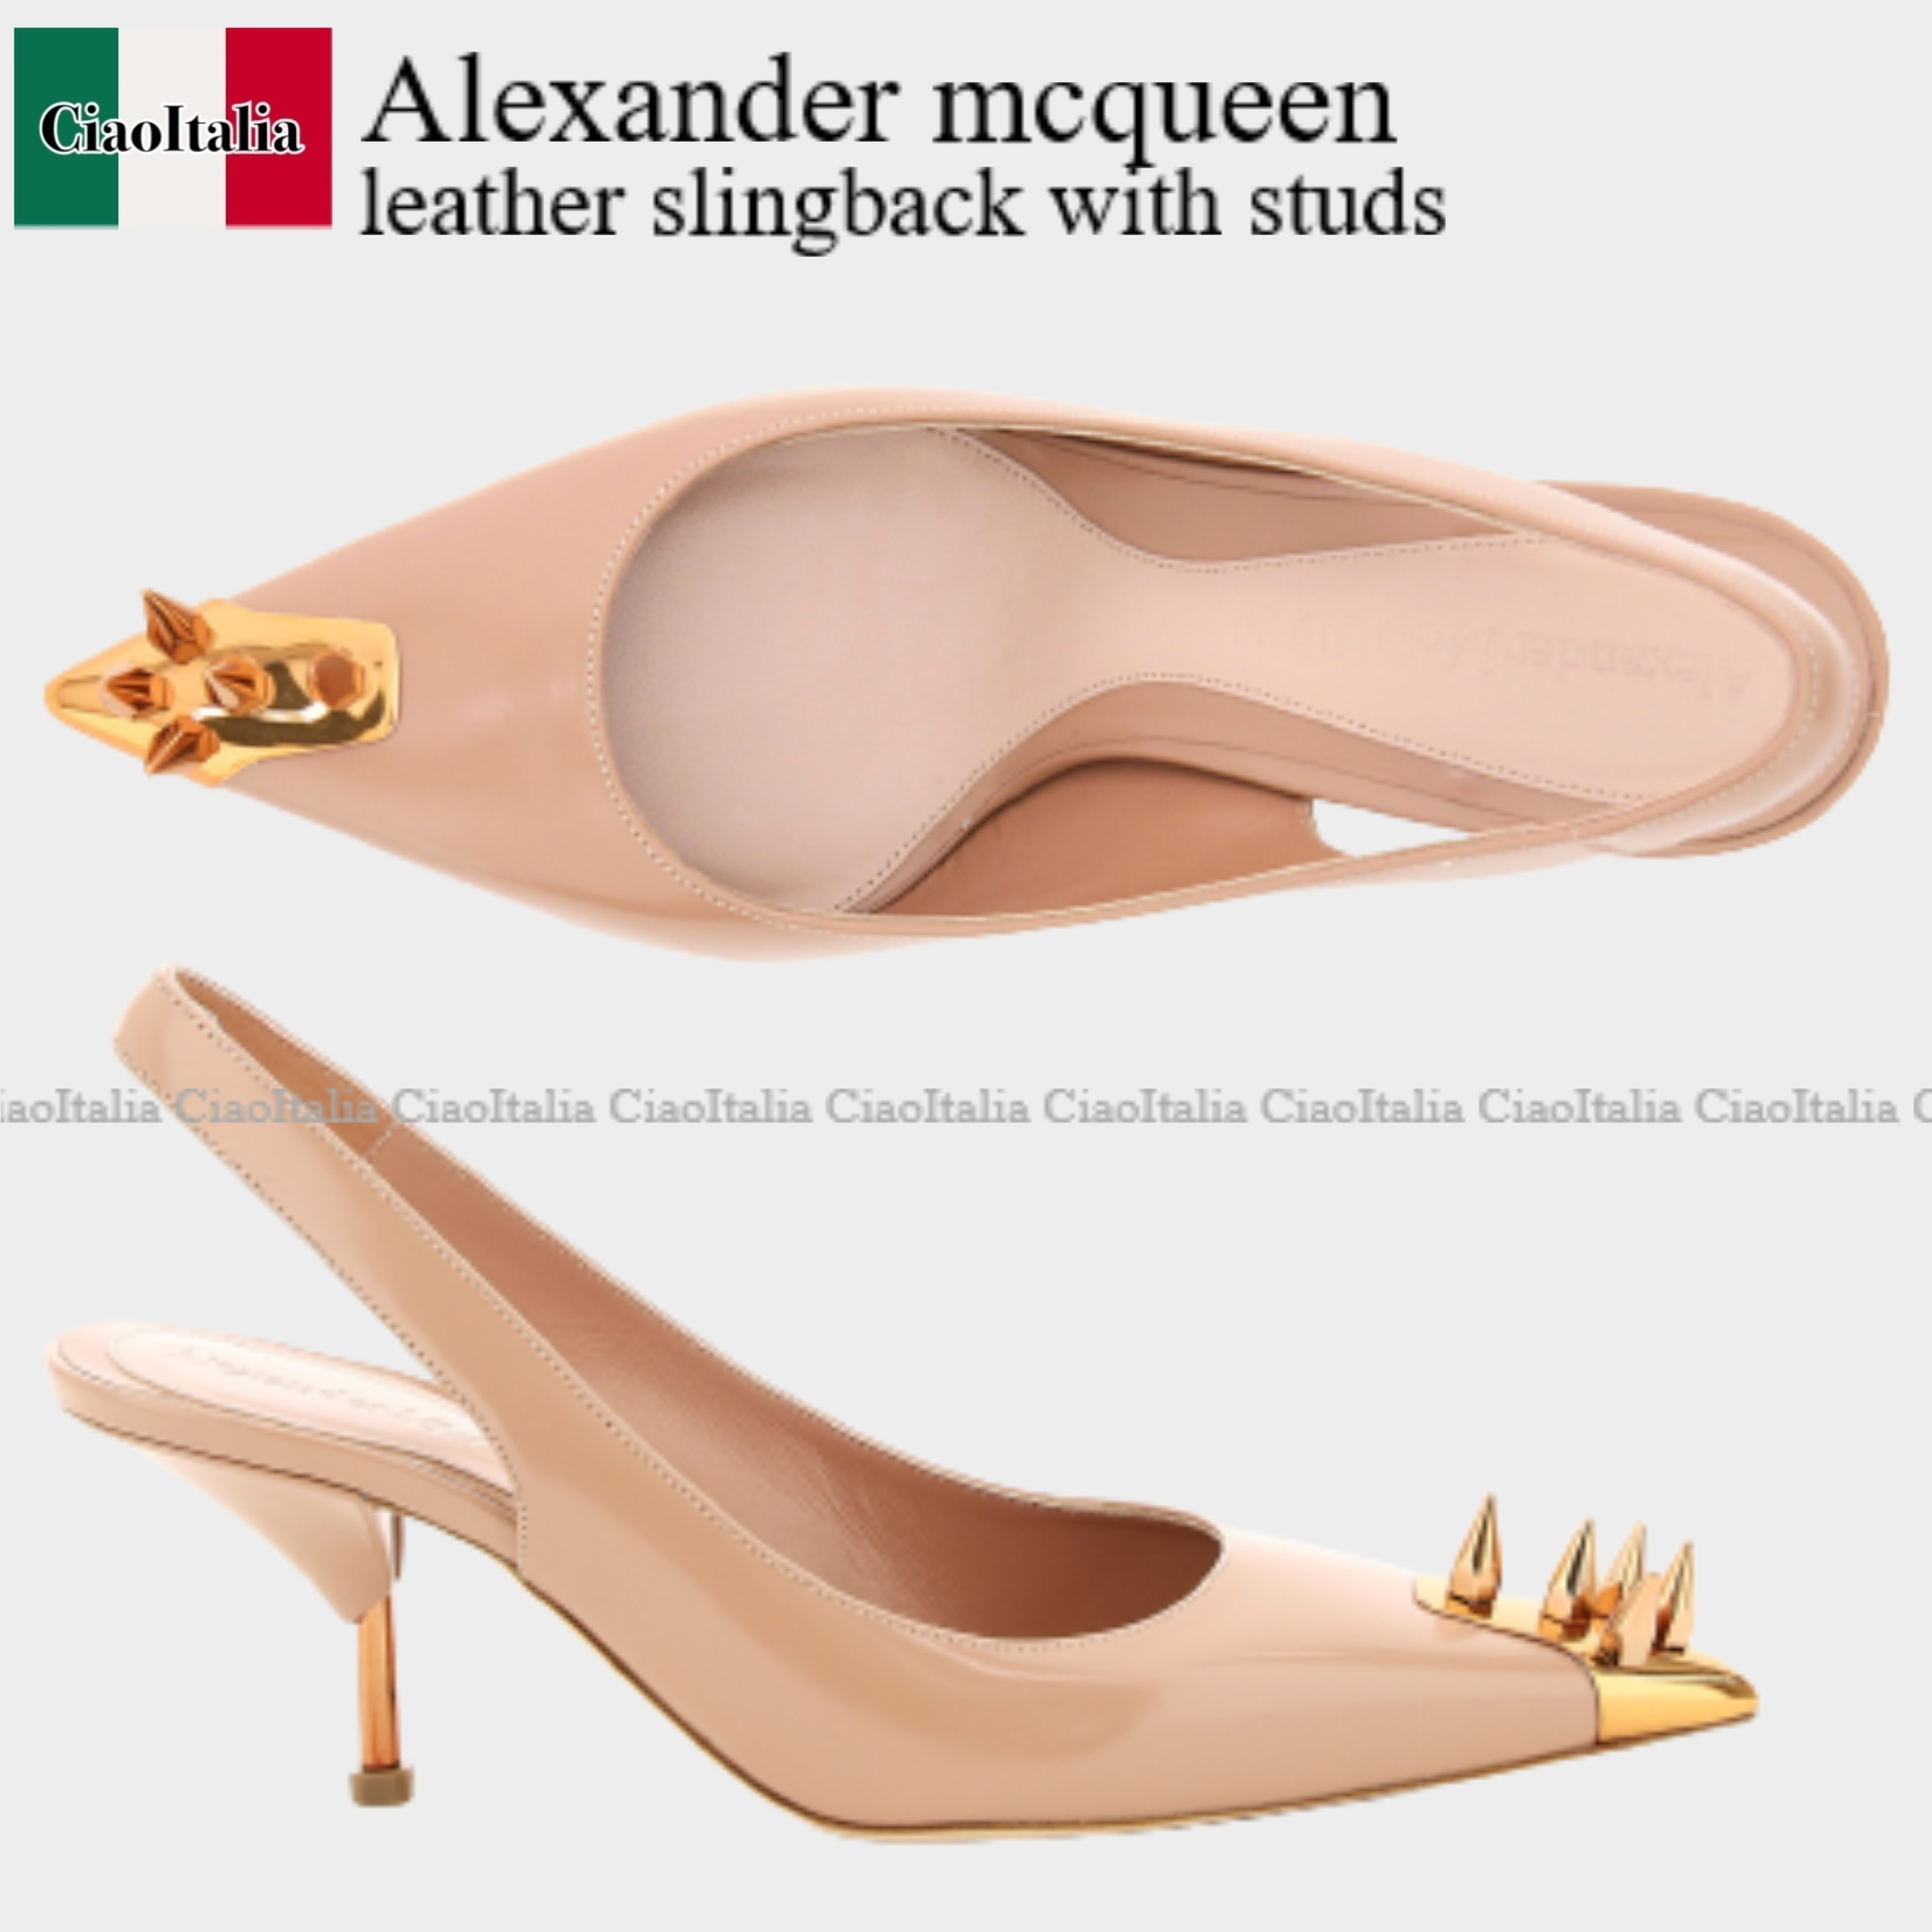 Alexander mcqueen leather slingback with studs (alexander mcqueen/パンプス) ALEXANDER MCQUEEN LEATHER SLINGBACK WITH  651709 WHV7F  651709 WHV7F 8225